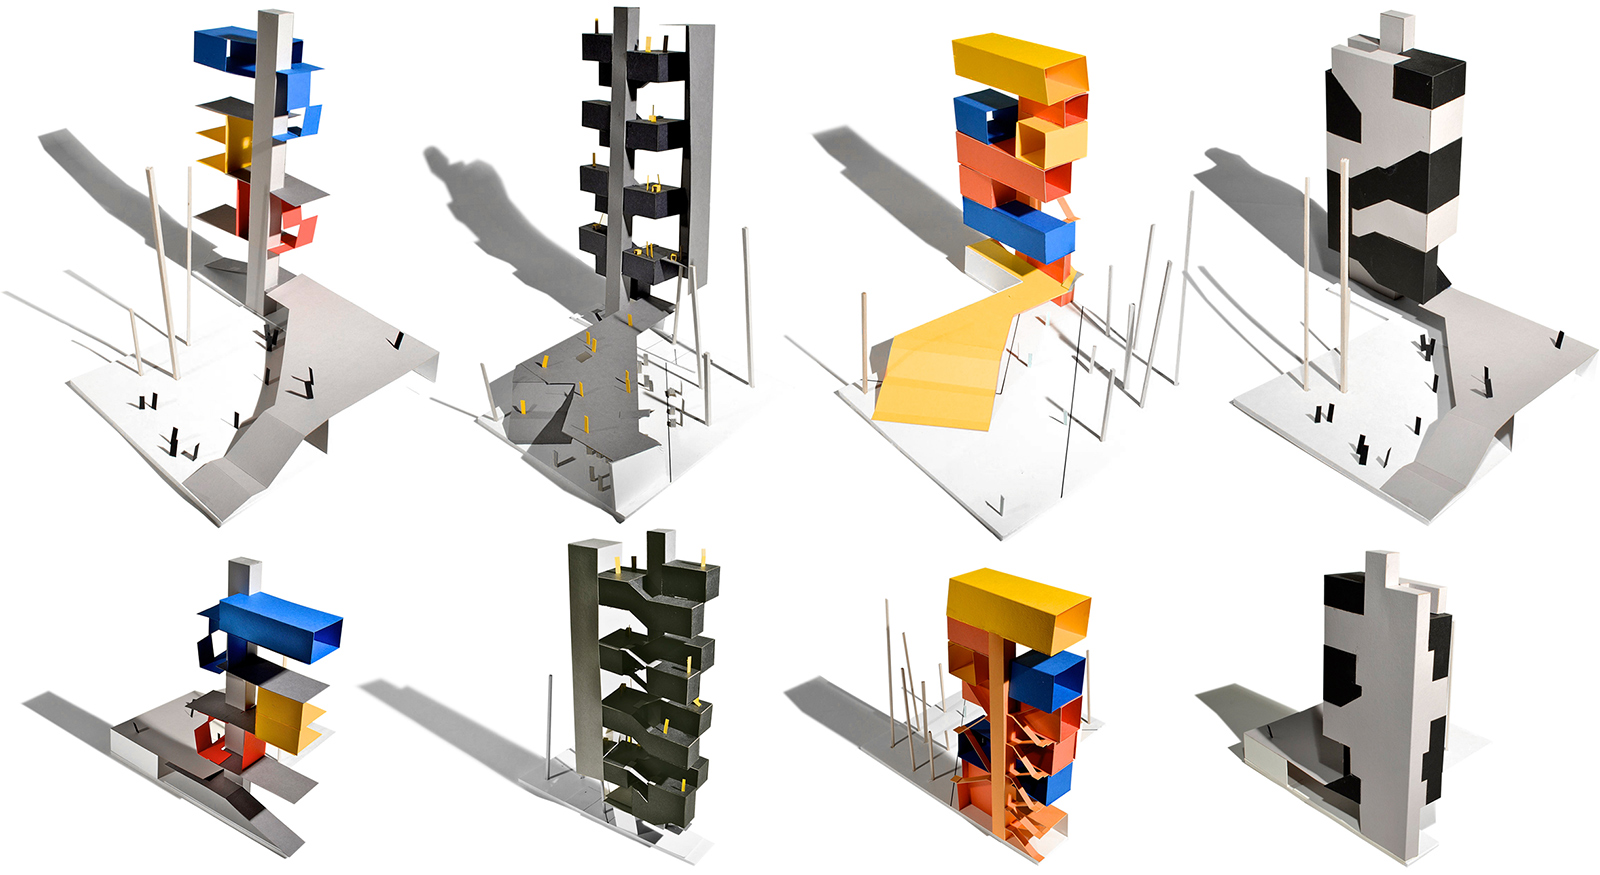 Collection of study models for CART looking at variations of shared and private space throughout the tower